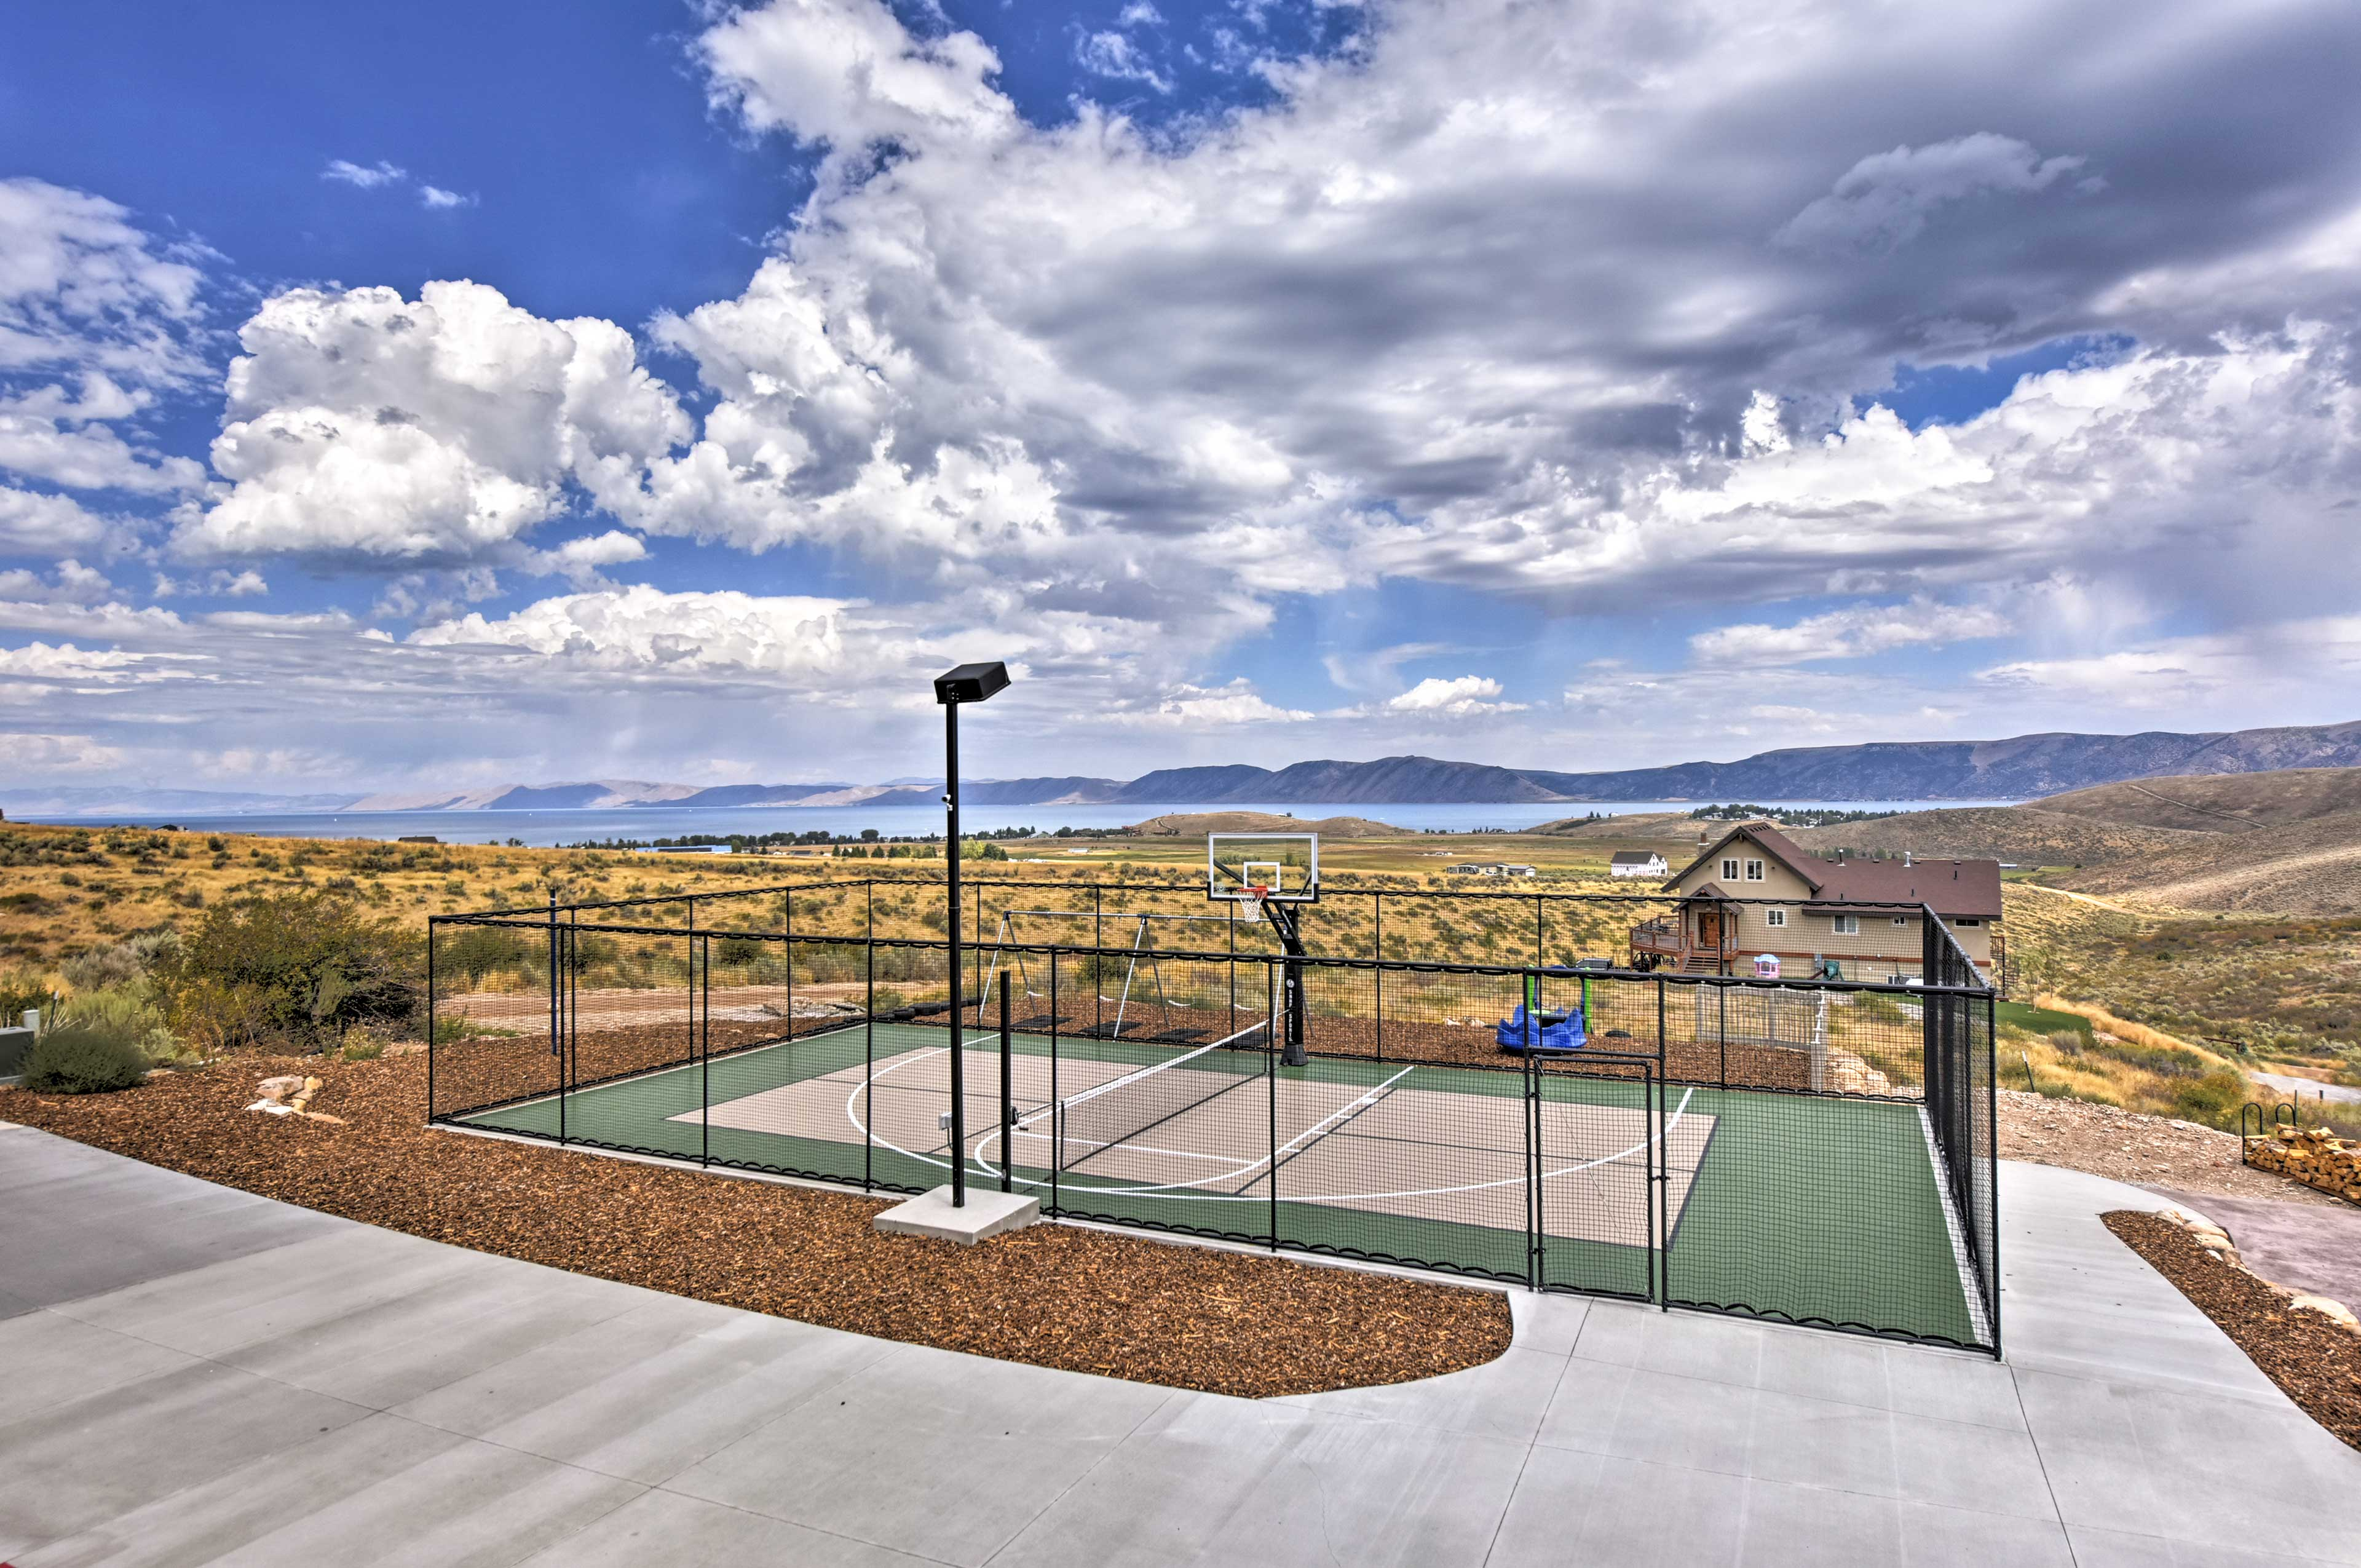 Challenge your companions to a full-sized game of basketball.